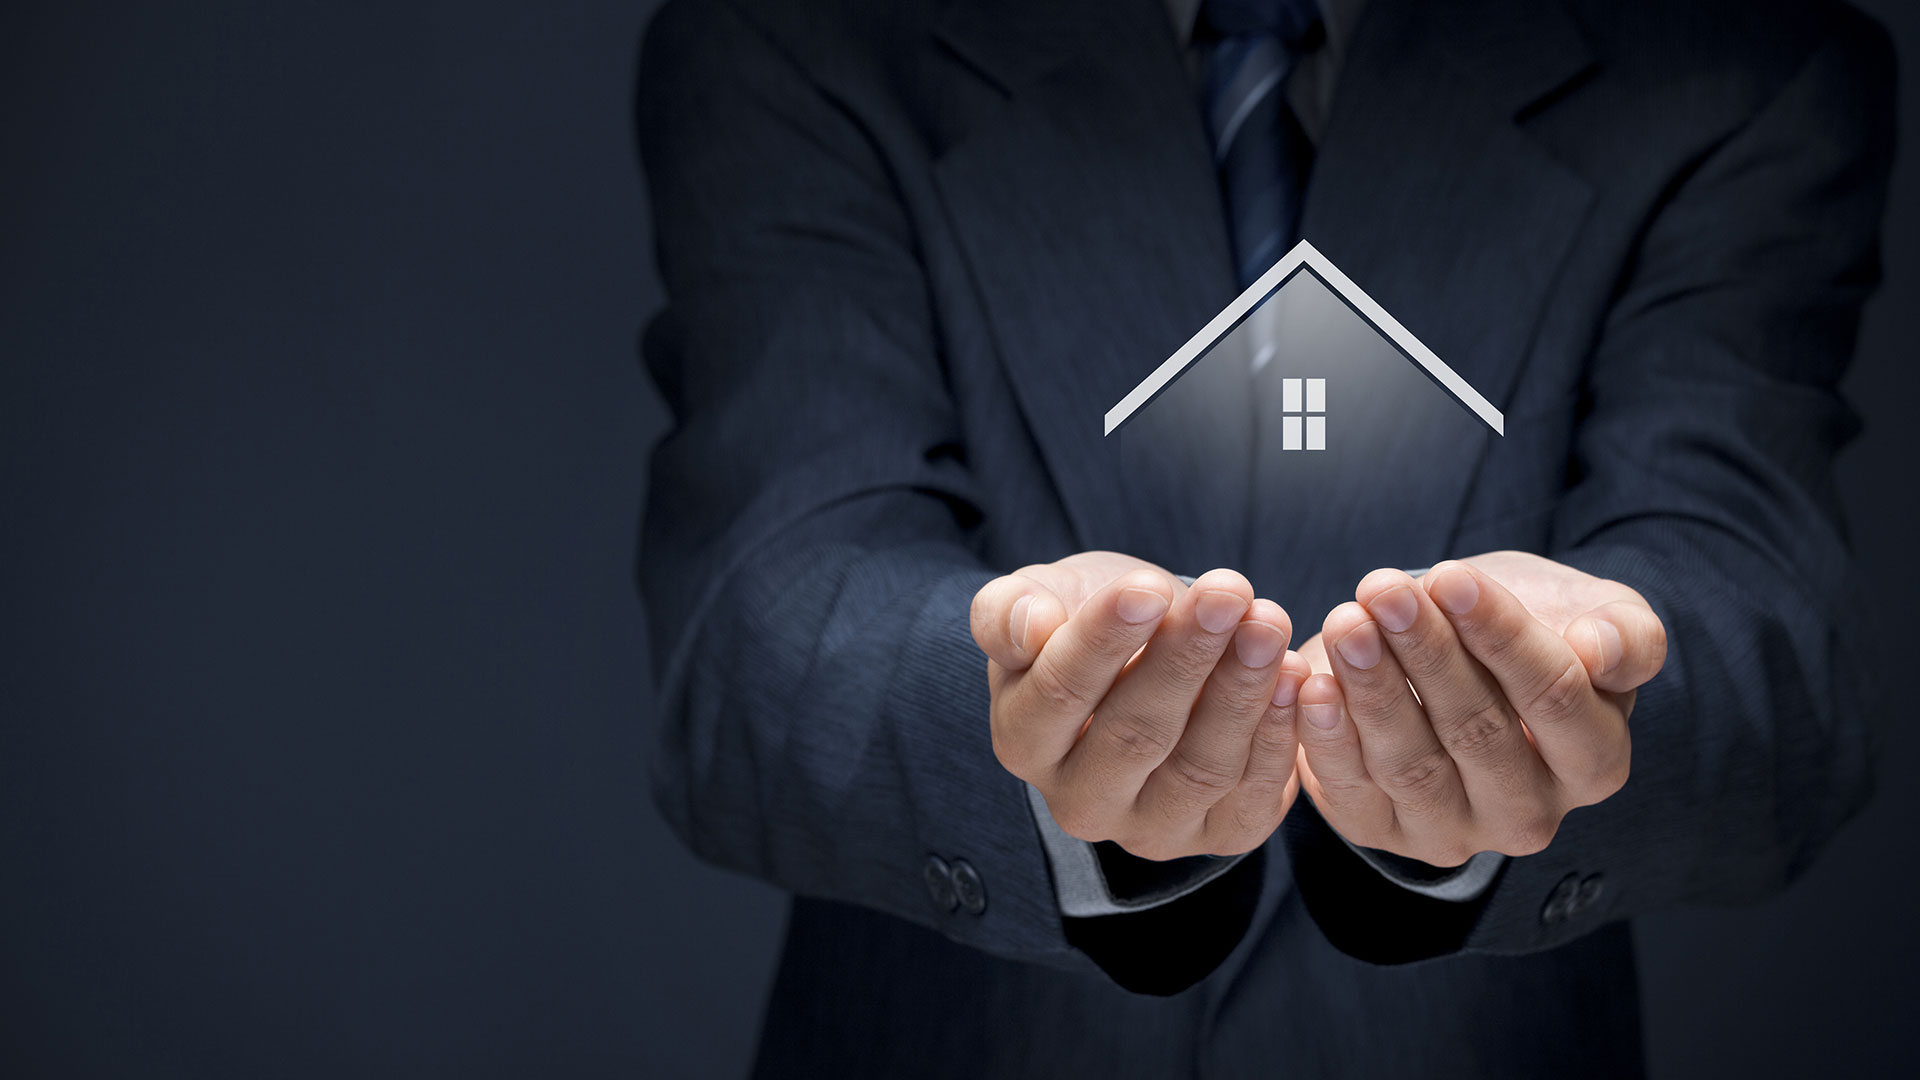 How to Get the Most Affordable Home Insurance Leads?